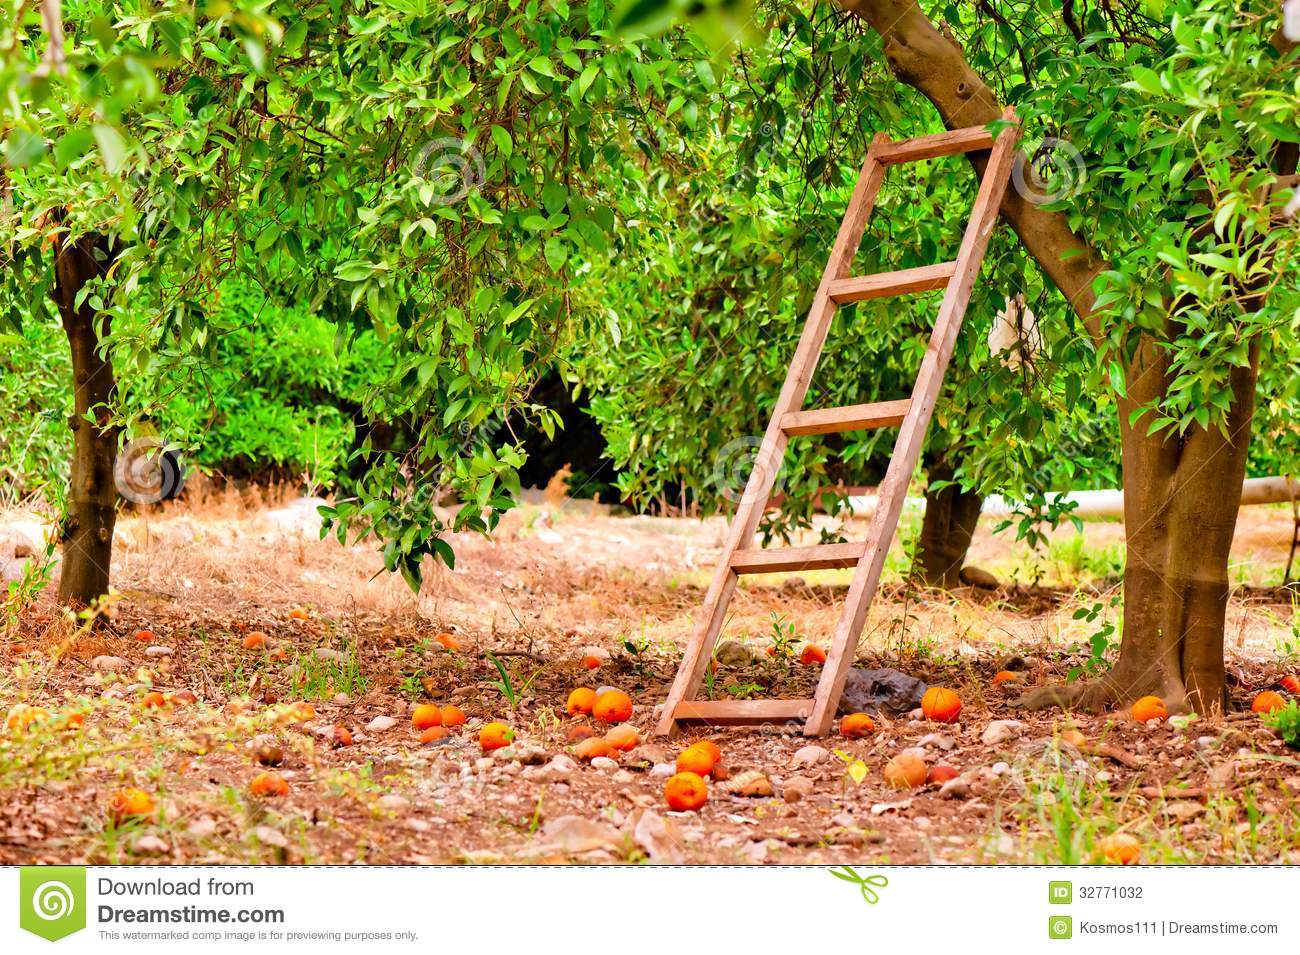 Harvest on orange citrus trees in the garden and a staircase